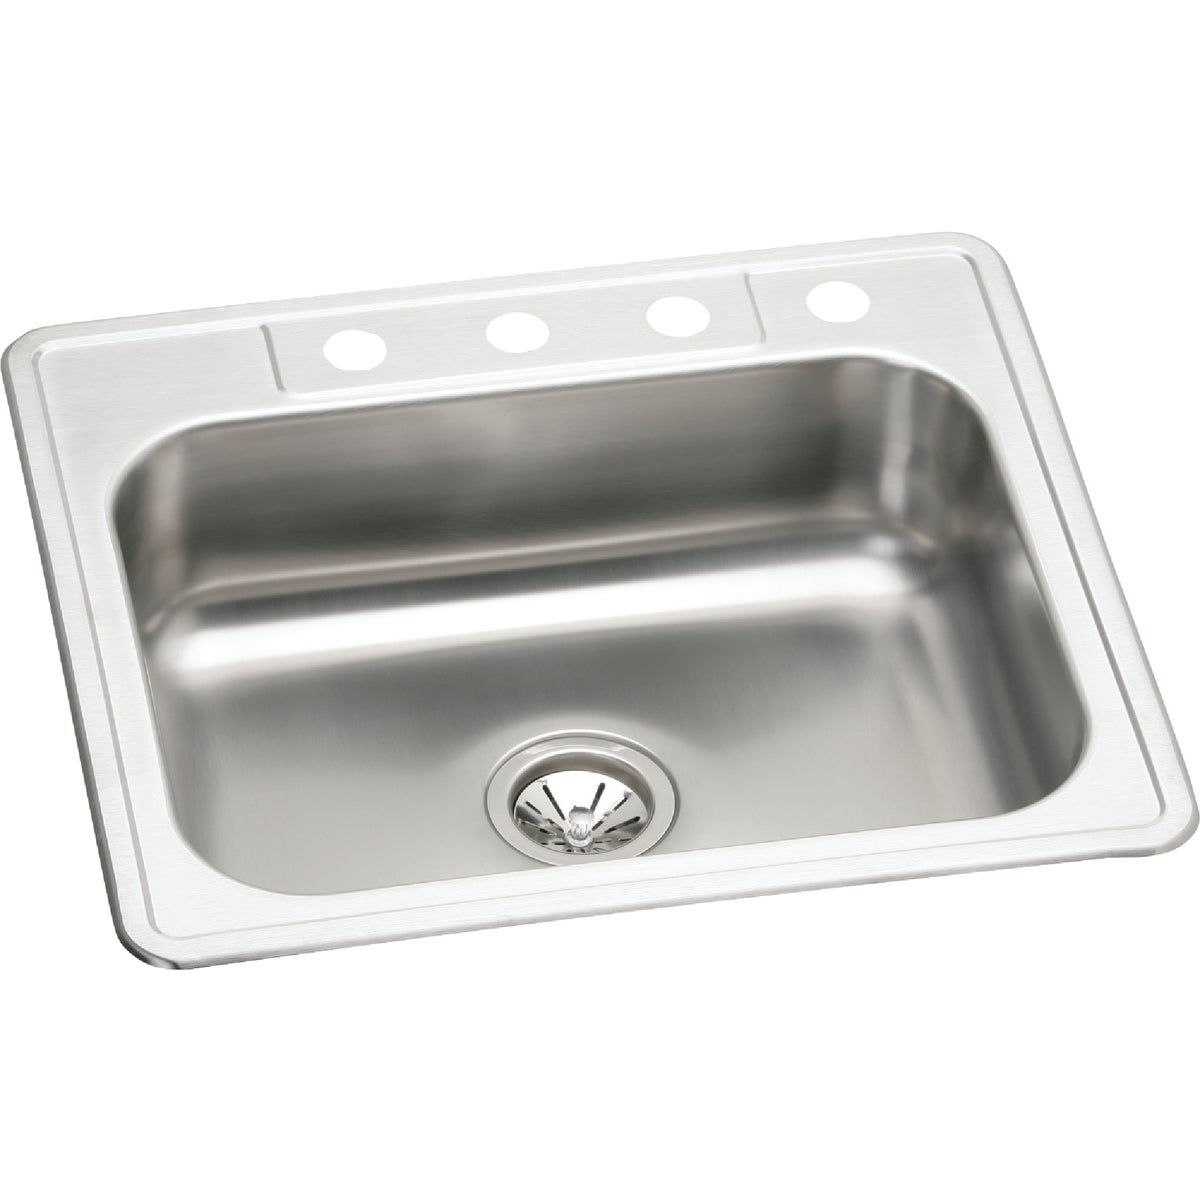 "7"" SS SINGLE-BOWL SINK - NBC25224 by Elkay Neptune"